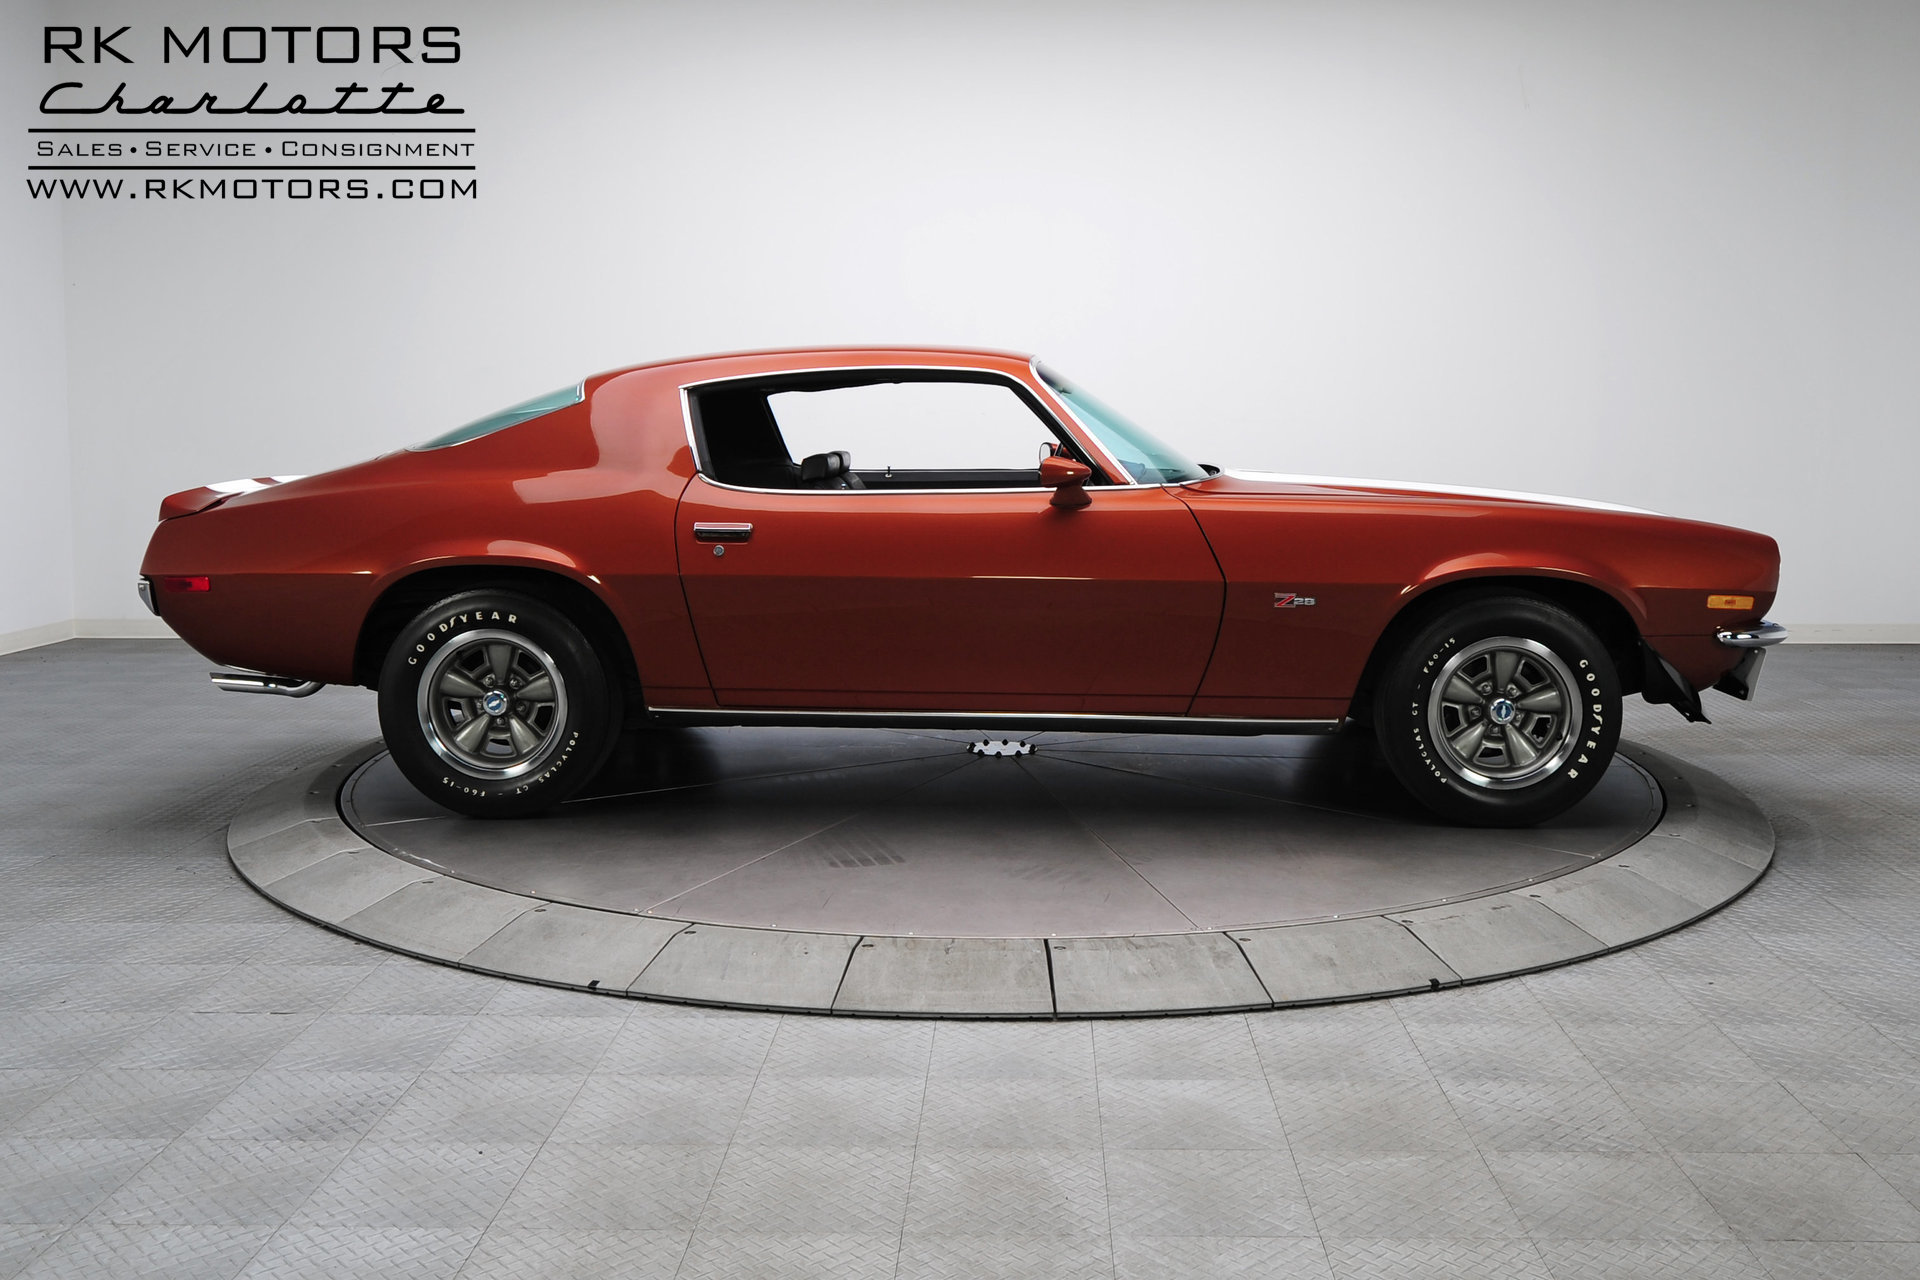 132918 1970 Chevrolet Camaro Rk Motors Classic And